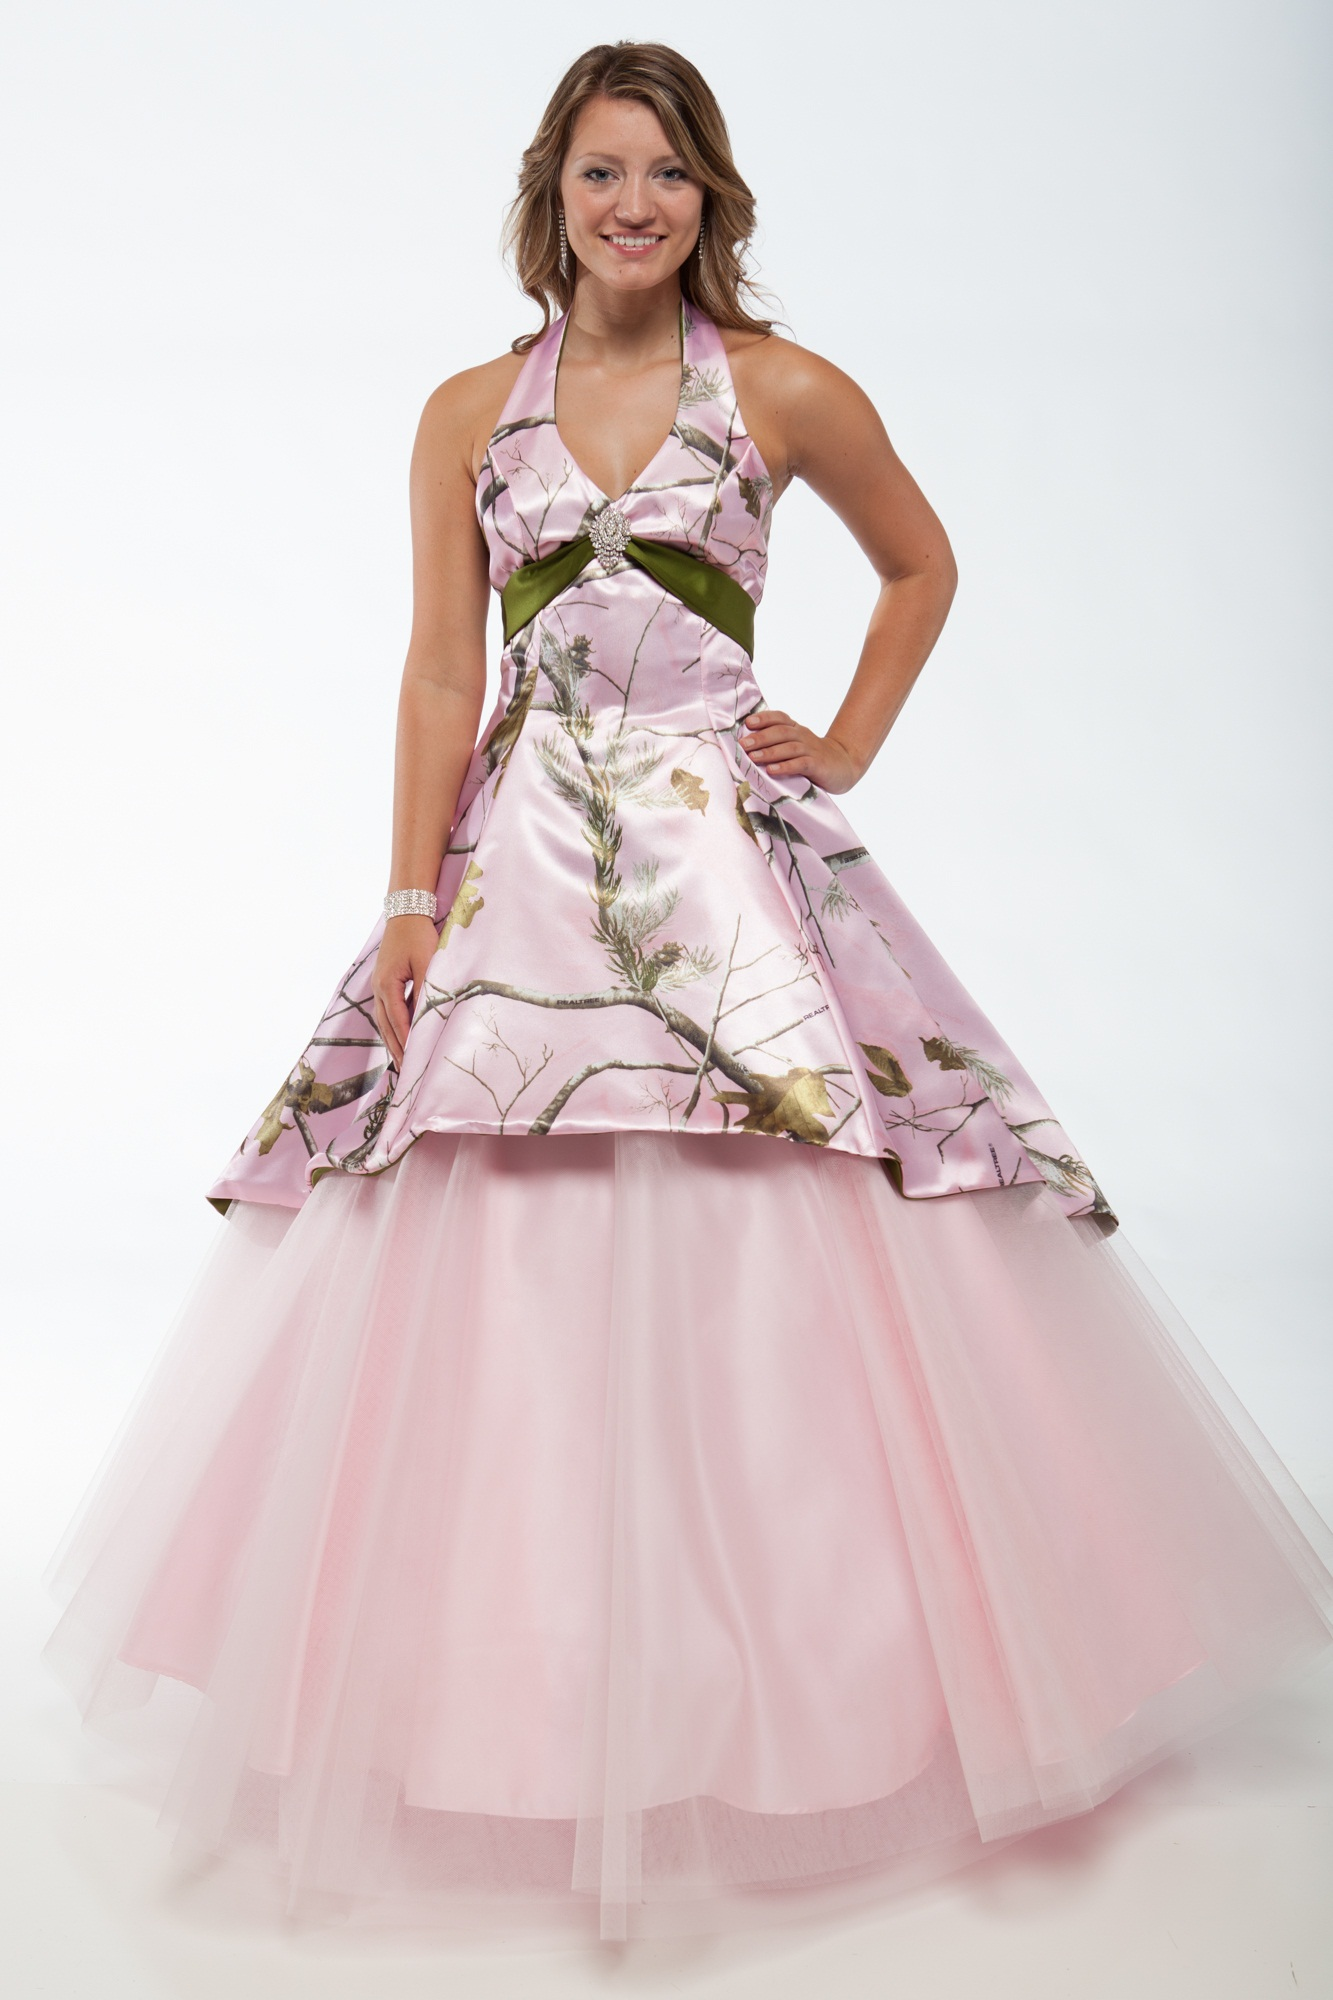 Realtree camo wedding dresses and formal attire for Pink and orange wedding dresses